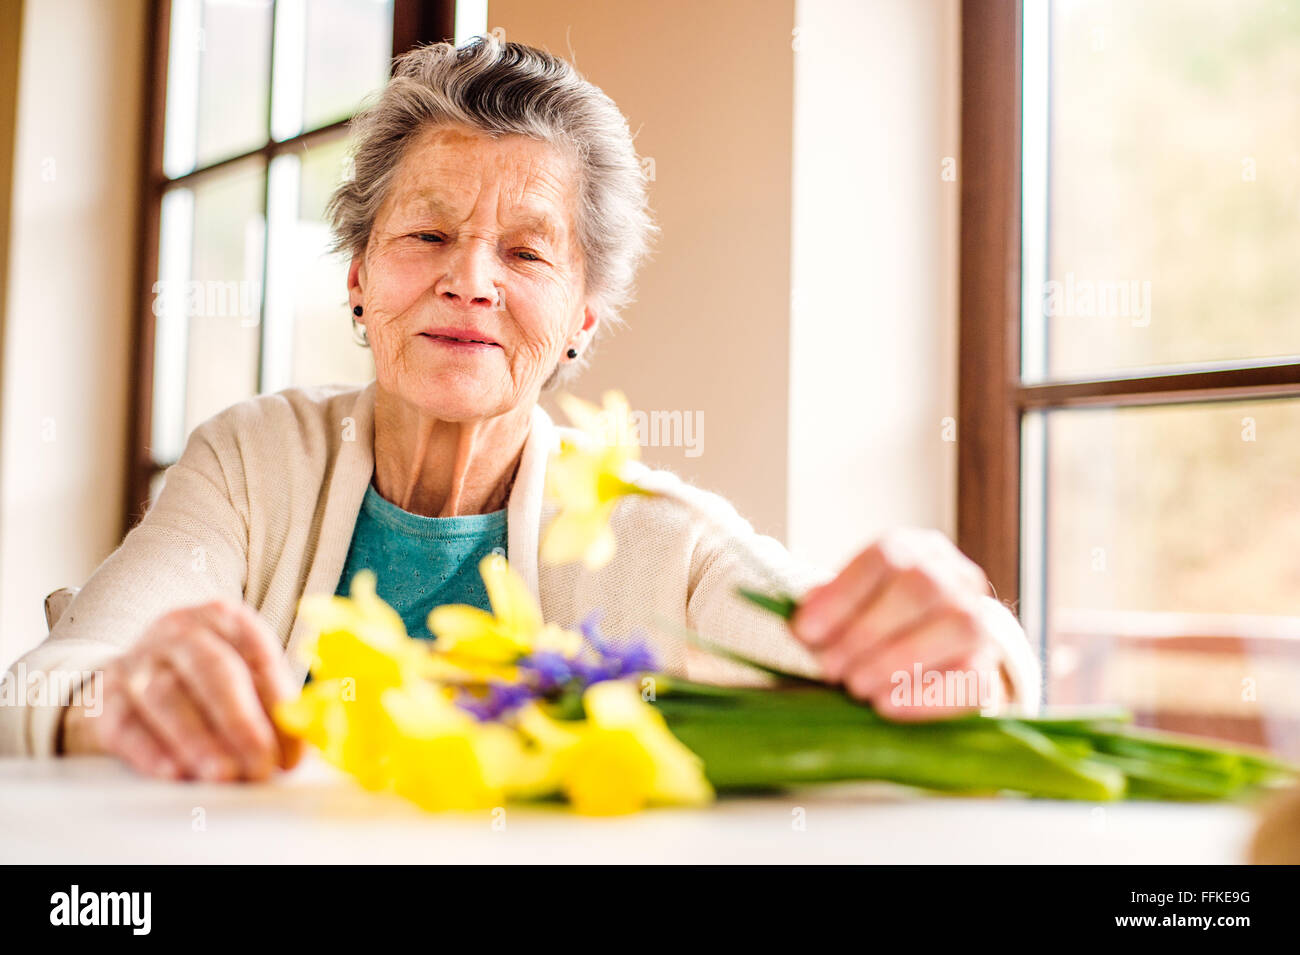 Senior woman by the window arranging bouquet of daffodils - Stock Image